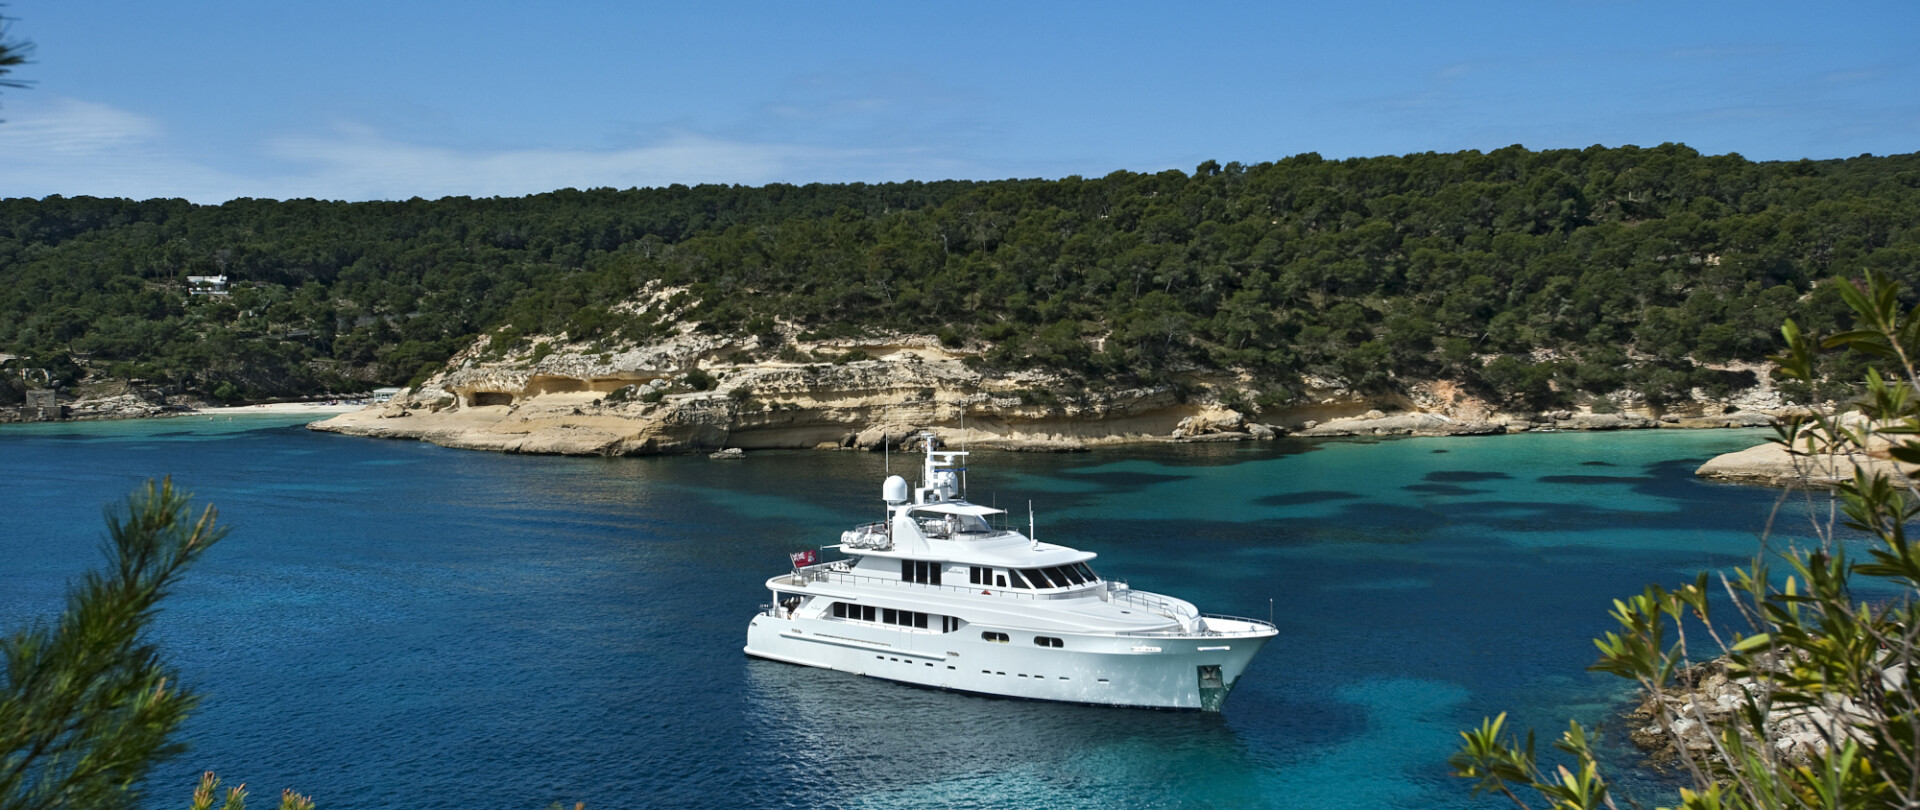 Christina G - Available for charter in the Balearics photo 1